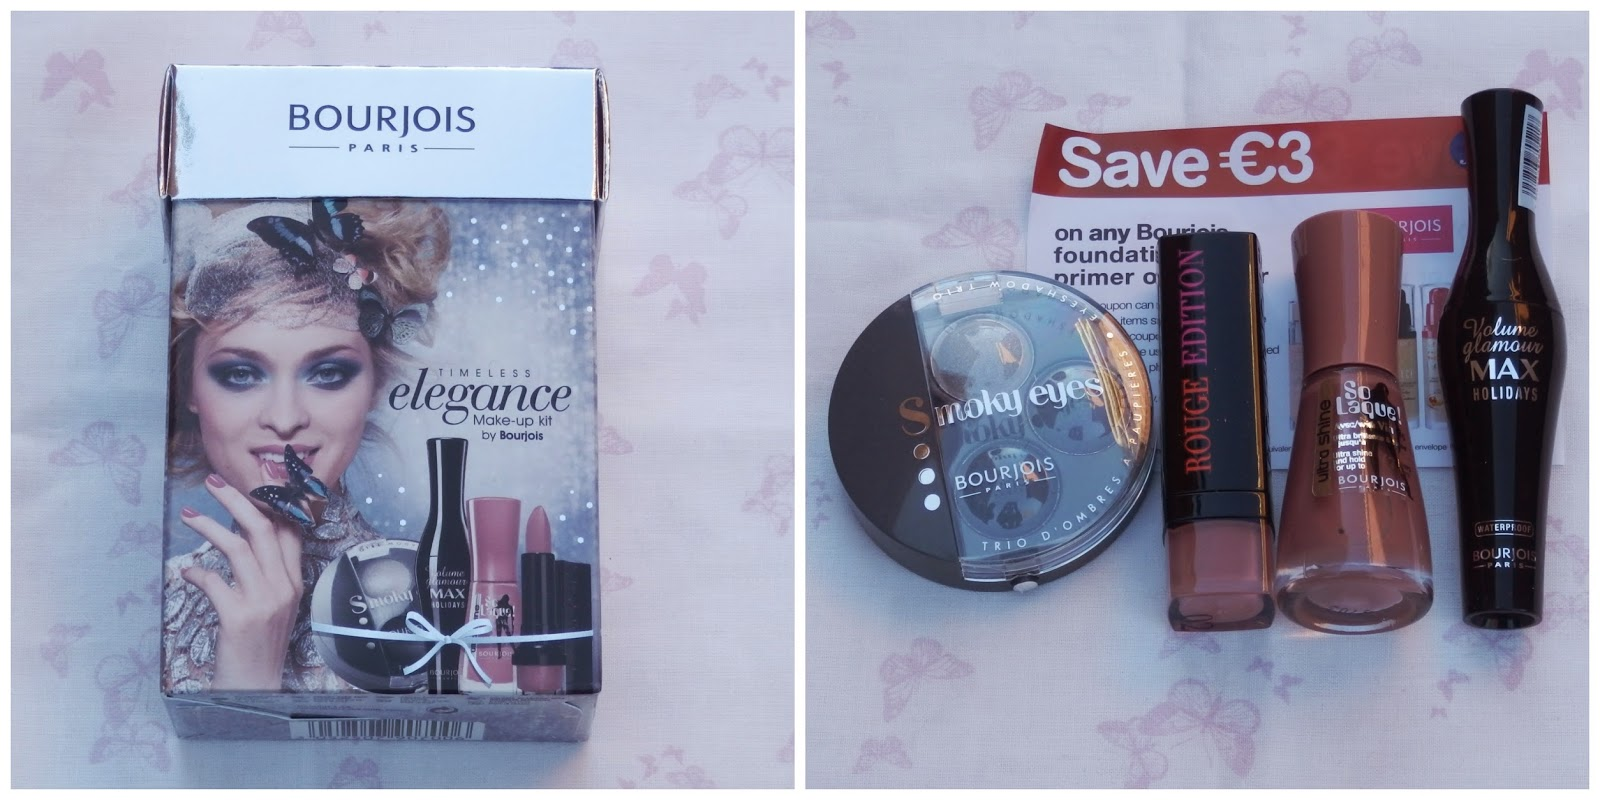 Bourjois Gift With Purchase